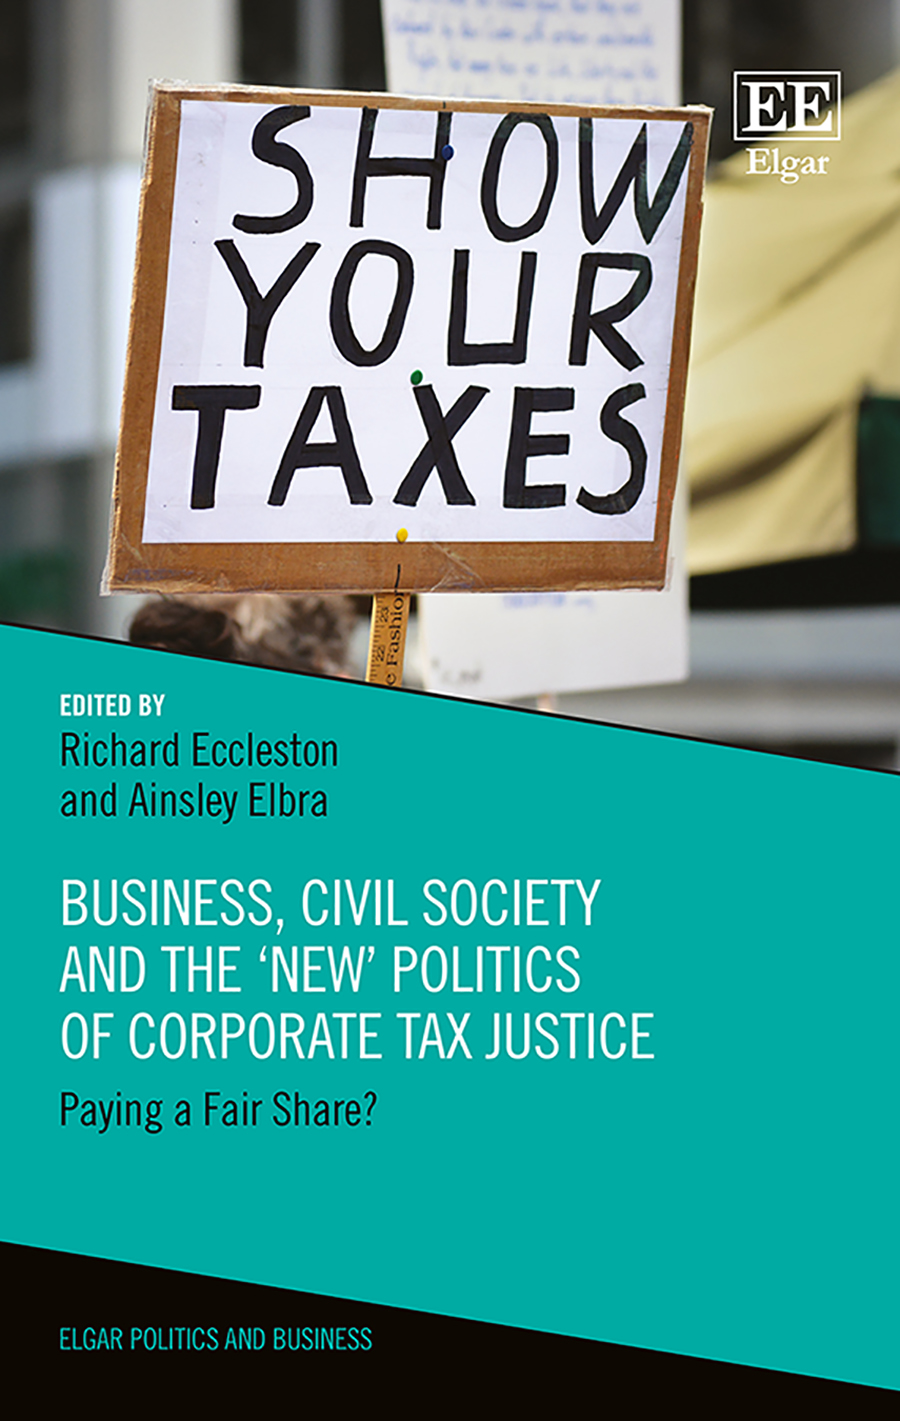 Download Ebook Business, Civil Society and the 'New' Politics of Corporate Tax Justice by Richard Eccleston Pdf